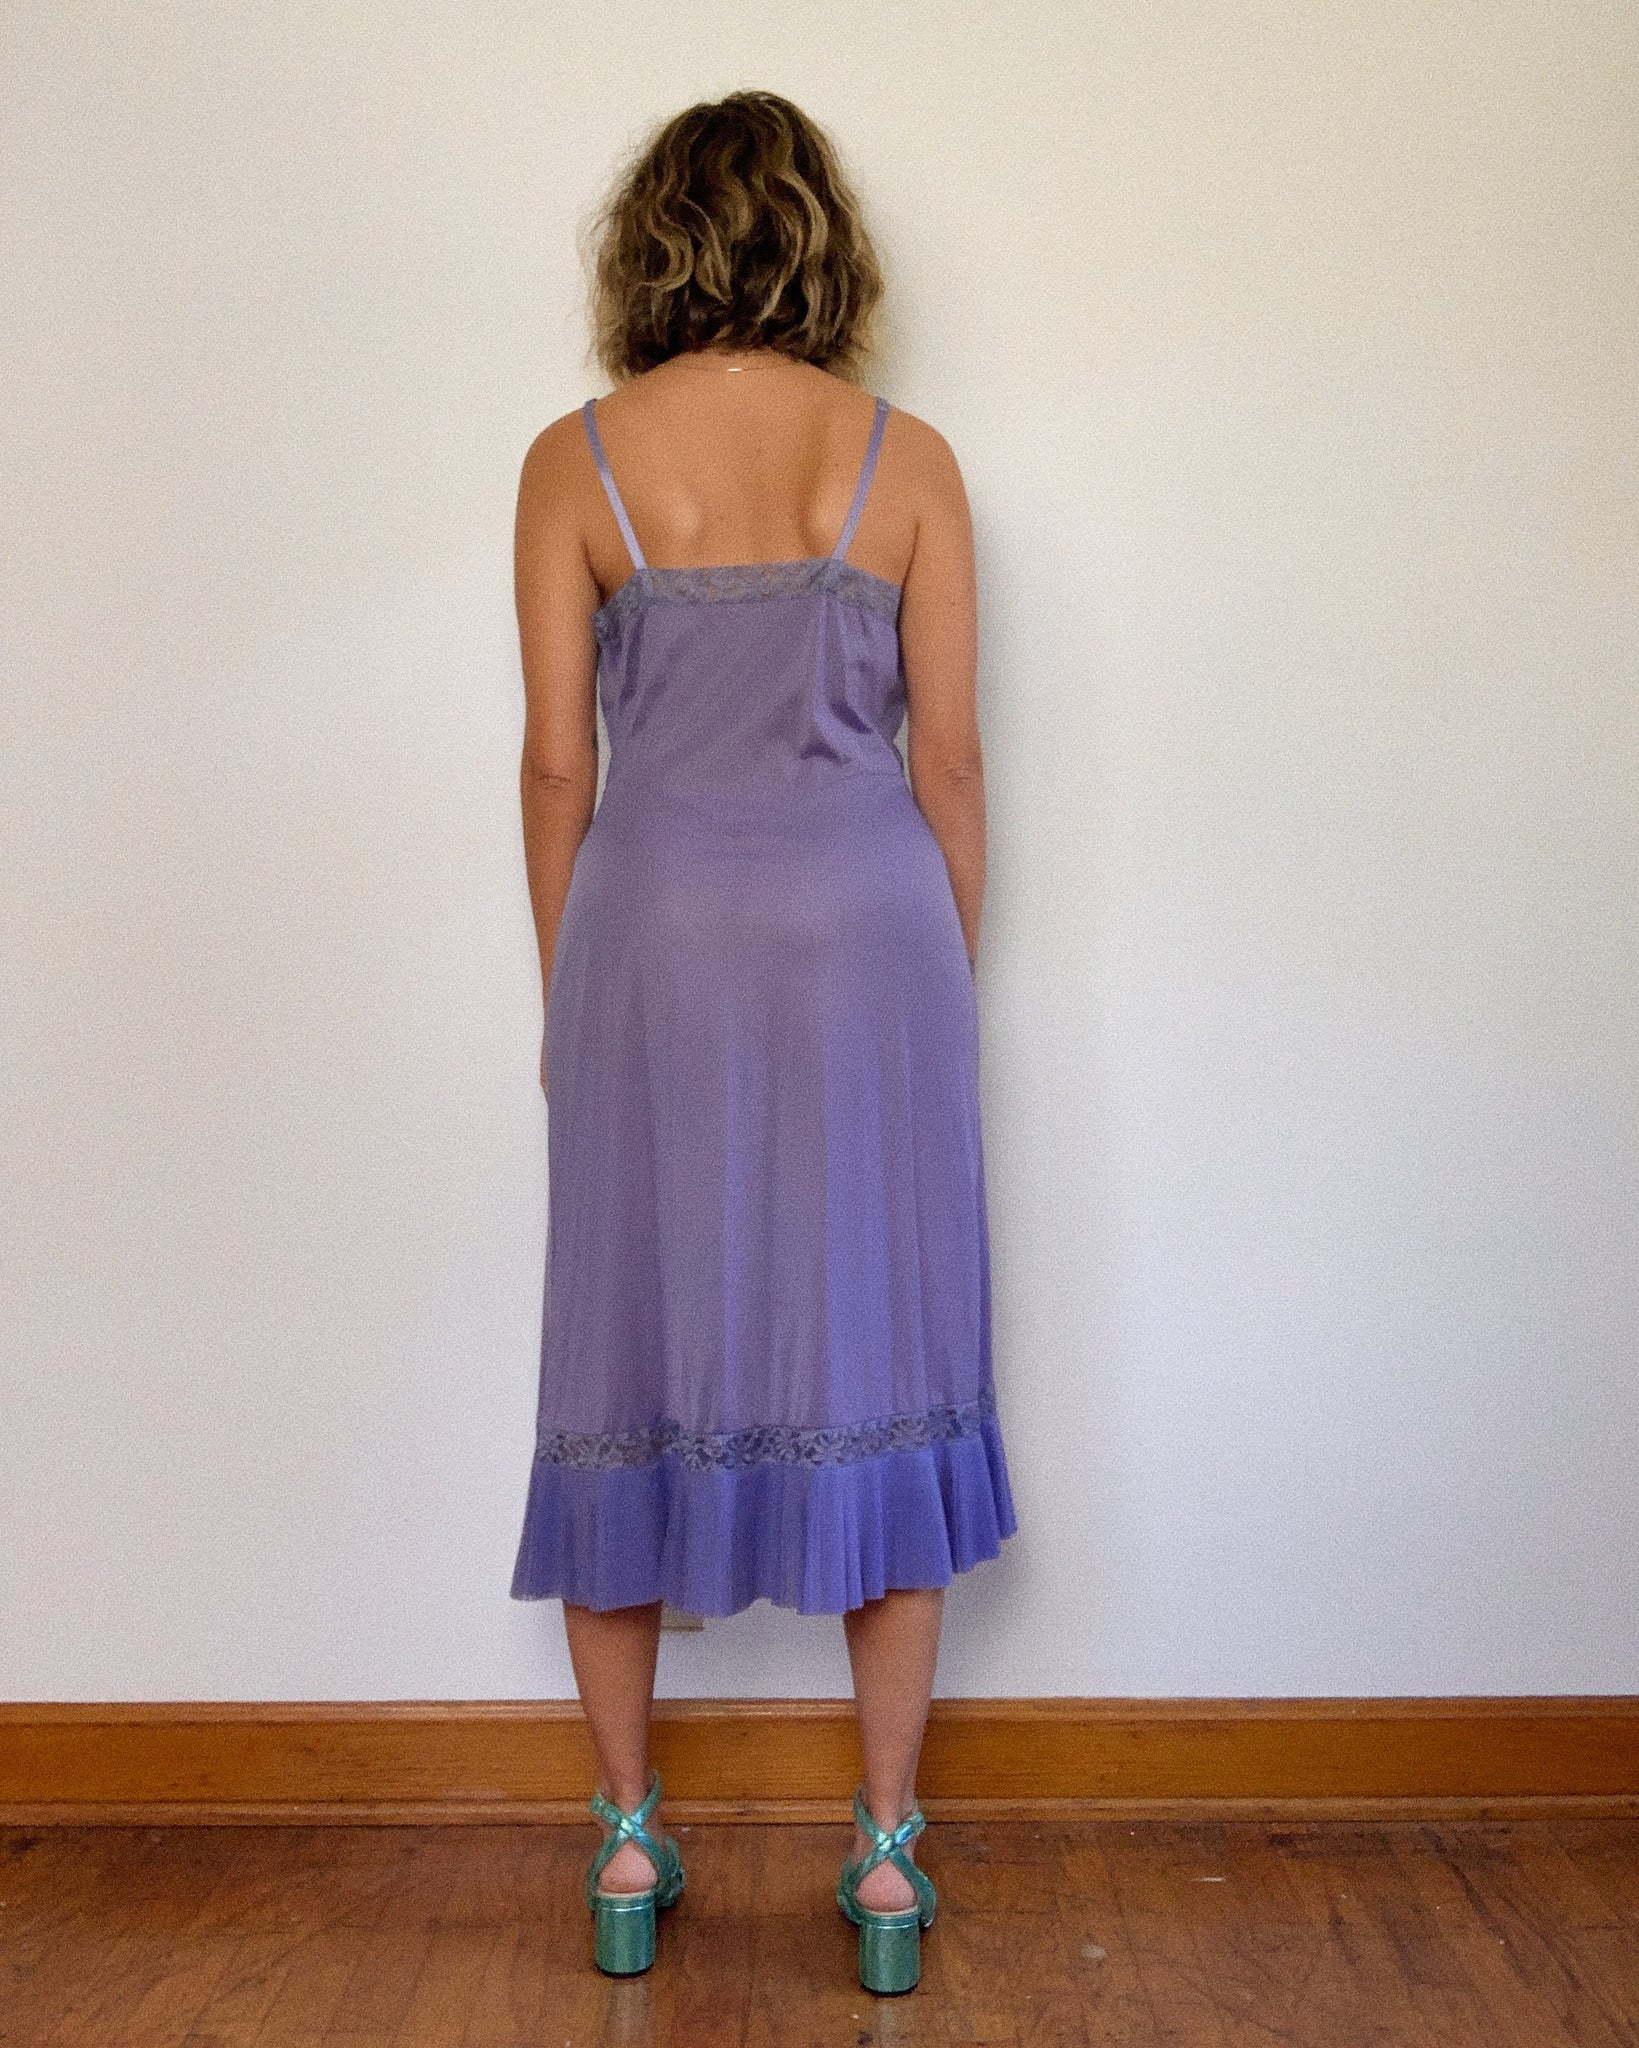 IRIS 1970s SLIP DRESS / MEDIUM